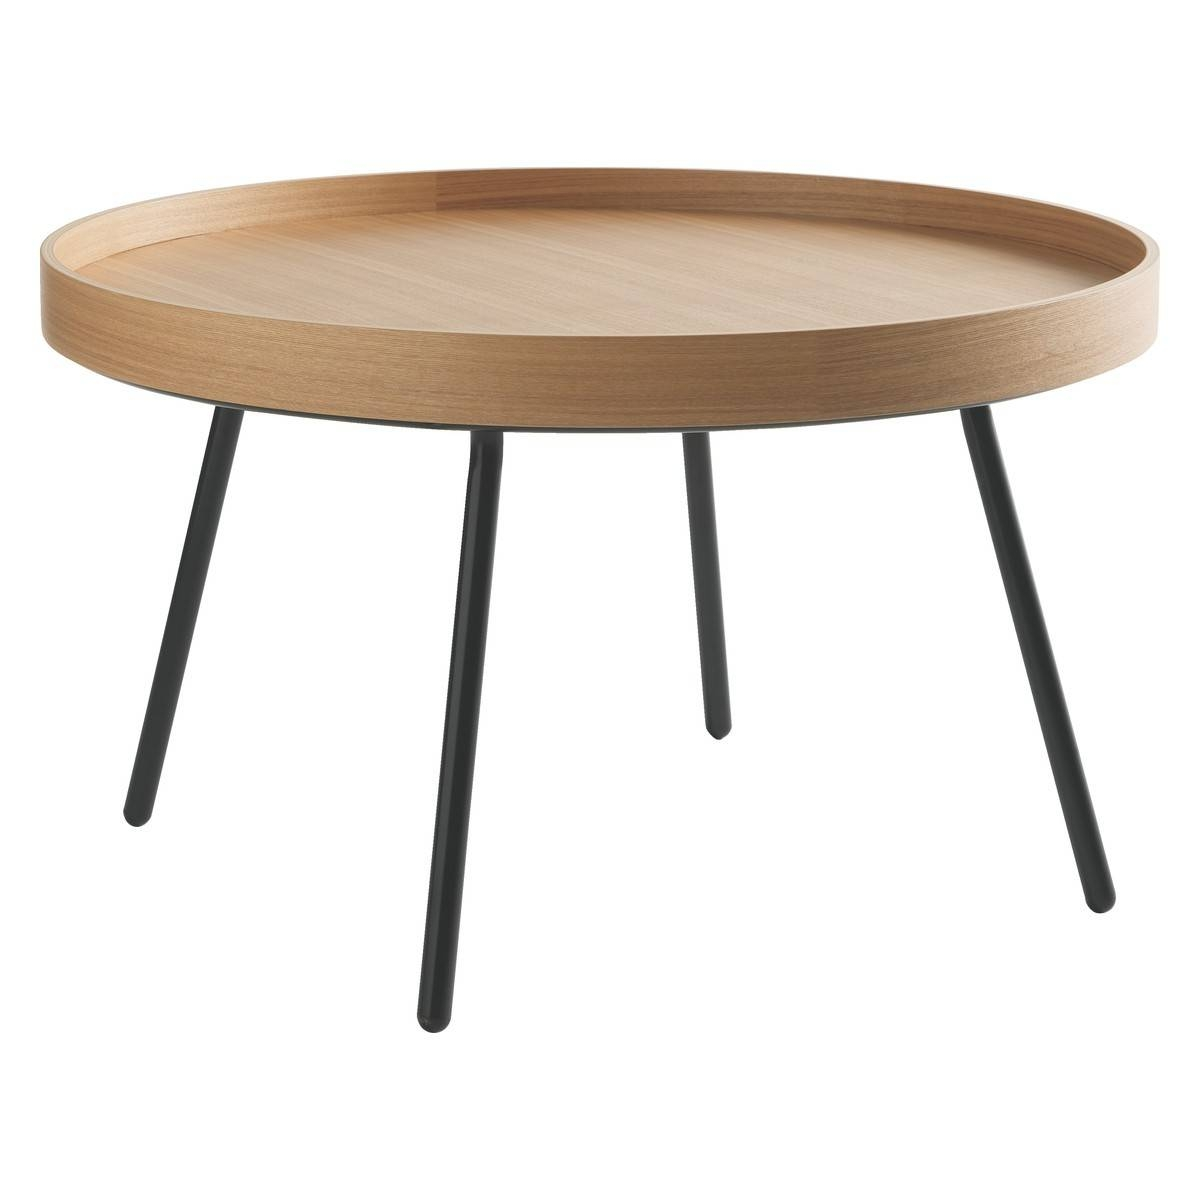 Larke Round Oak Tray Coffee Table | Buy Now At Habitat Uk inside Round Coffee Table Trays (Image 15 of 30)